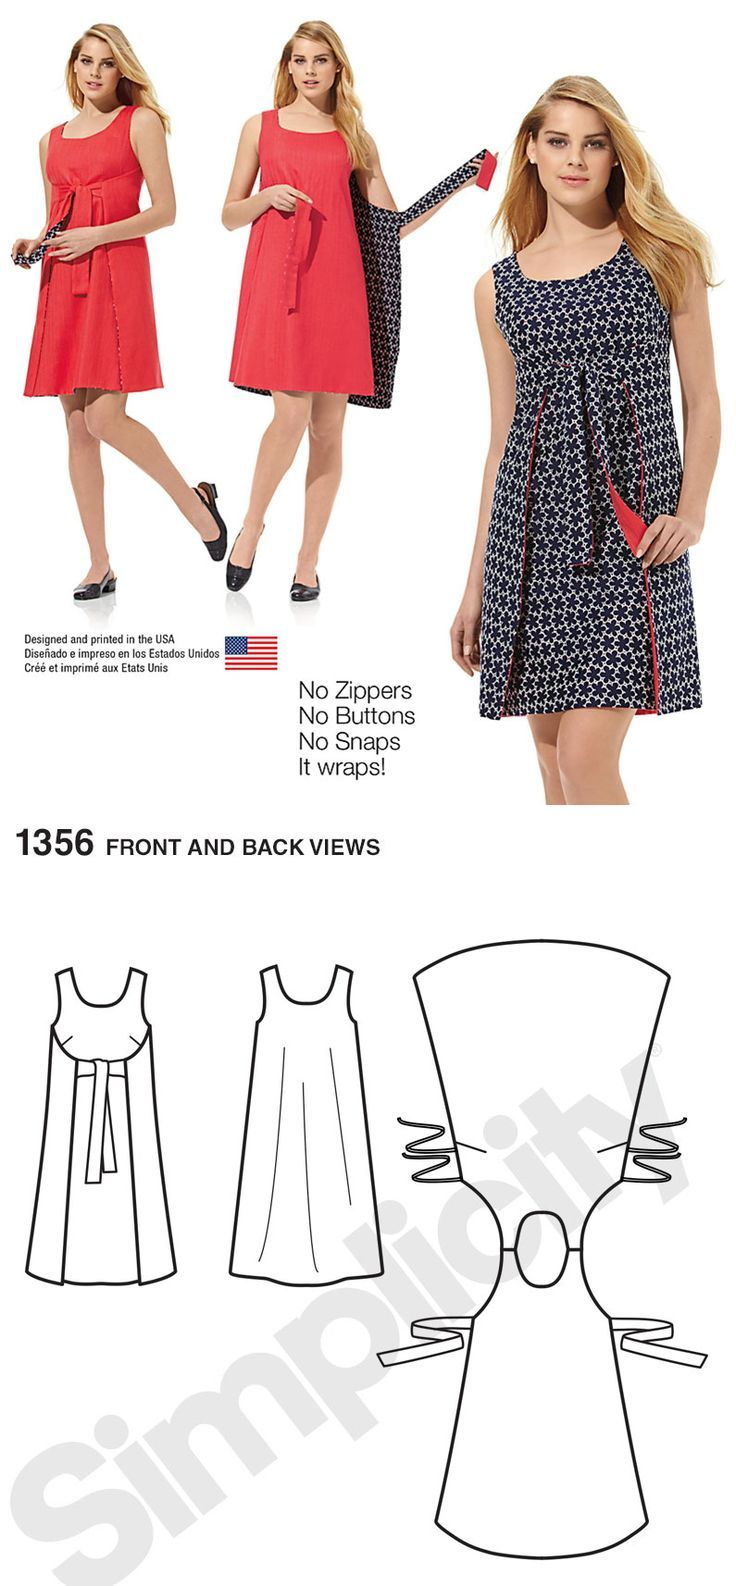 Pin by Jim Orcutt on sewing | Costura, Vestidos, Ropa